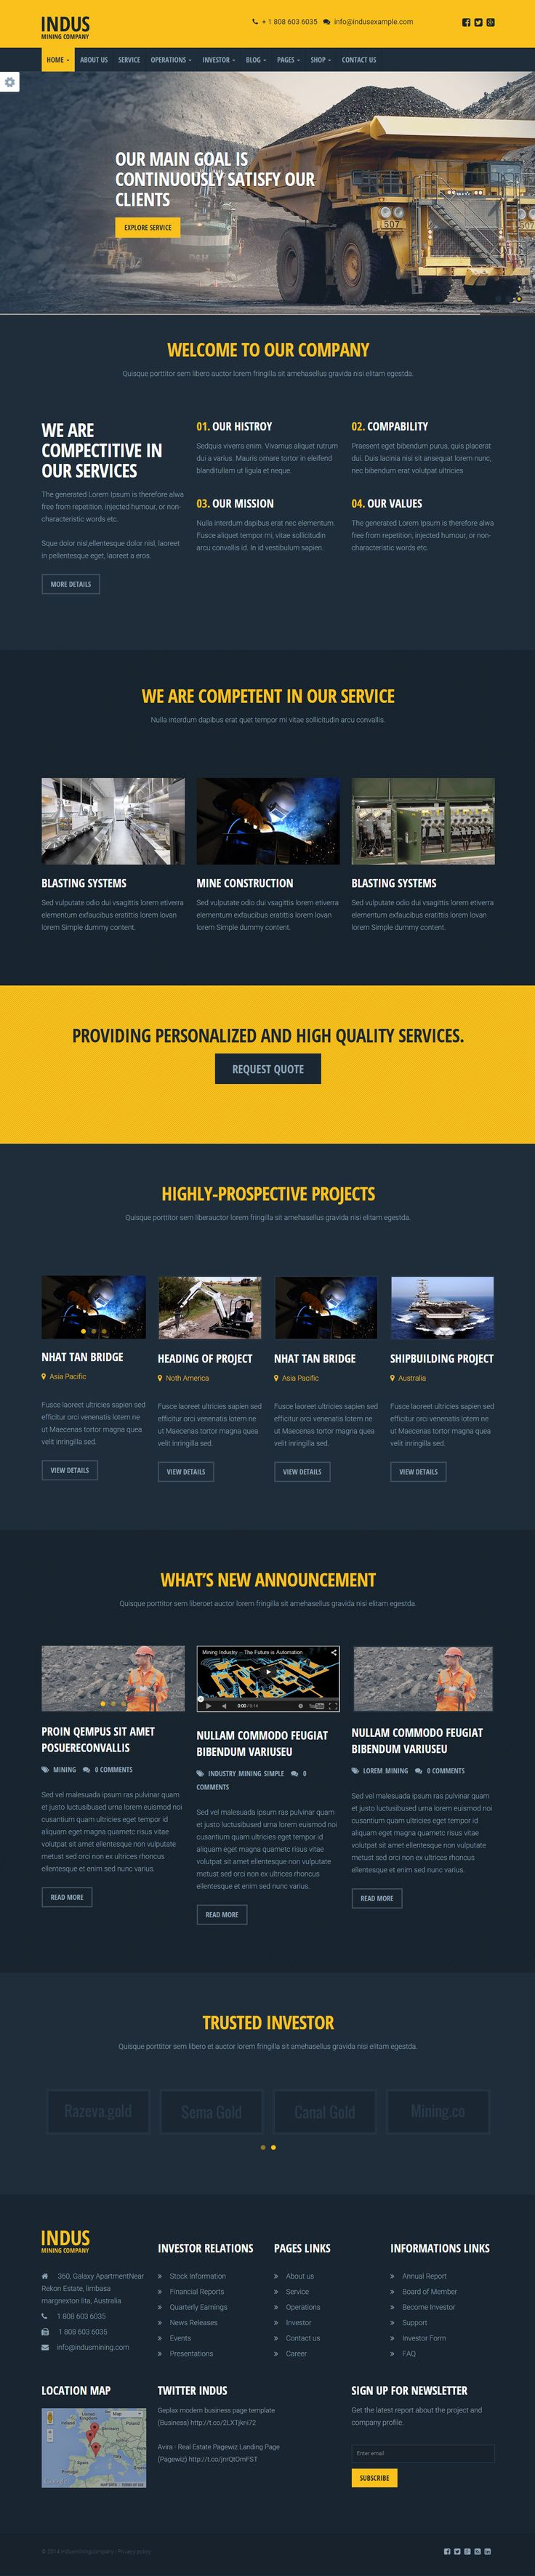 Wordpress Web Design Contract Template:  Web layout Website layout rh:pinterest.com,Design